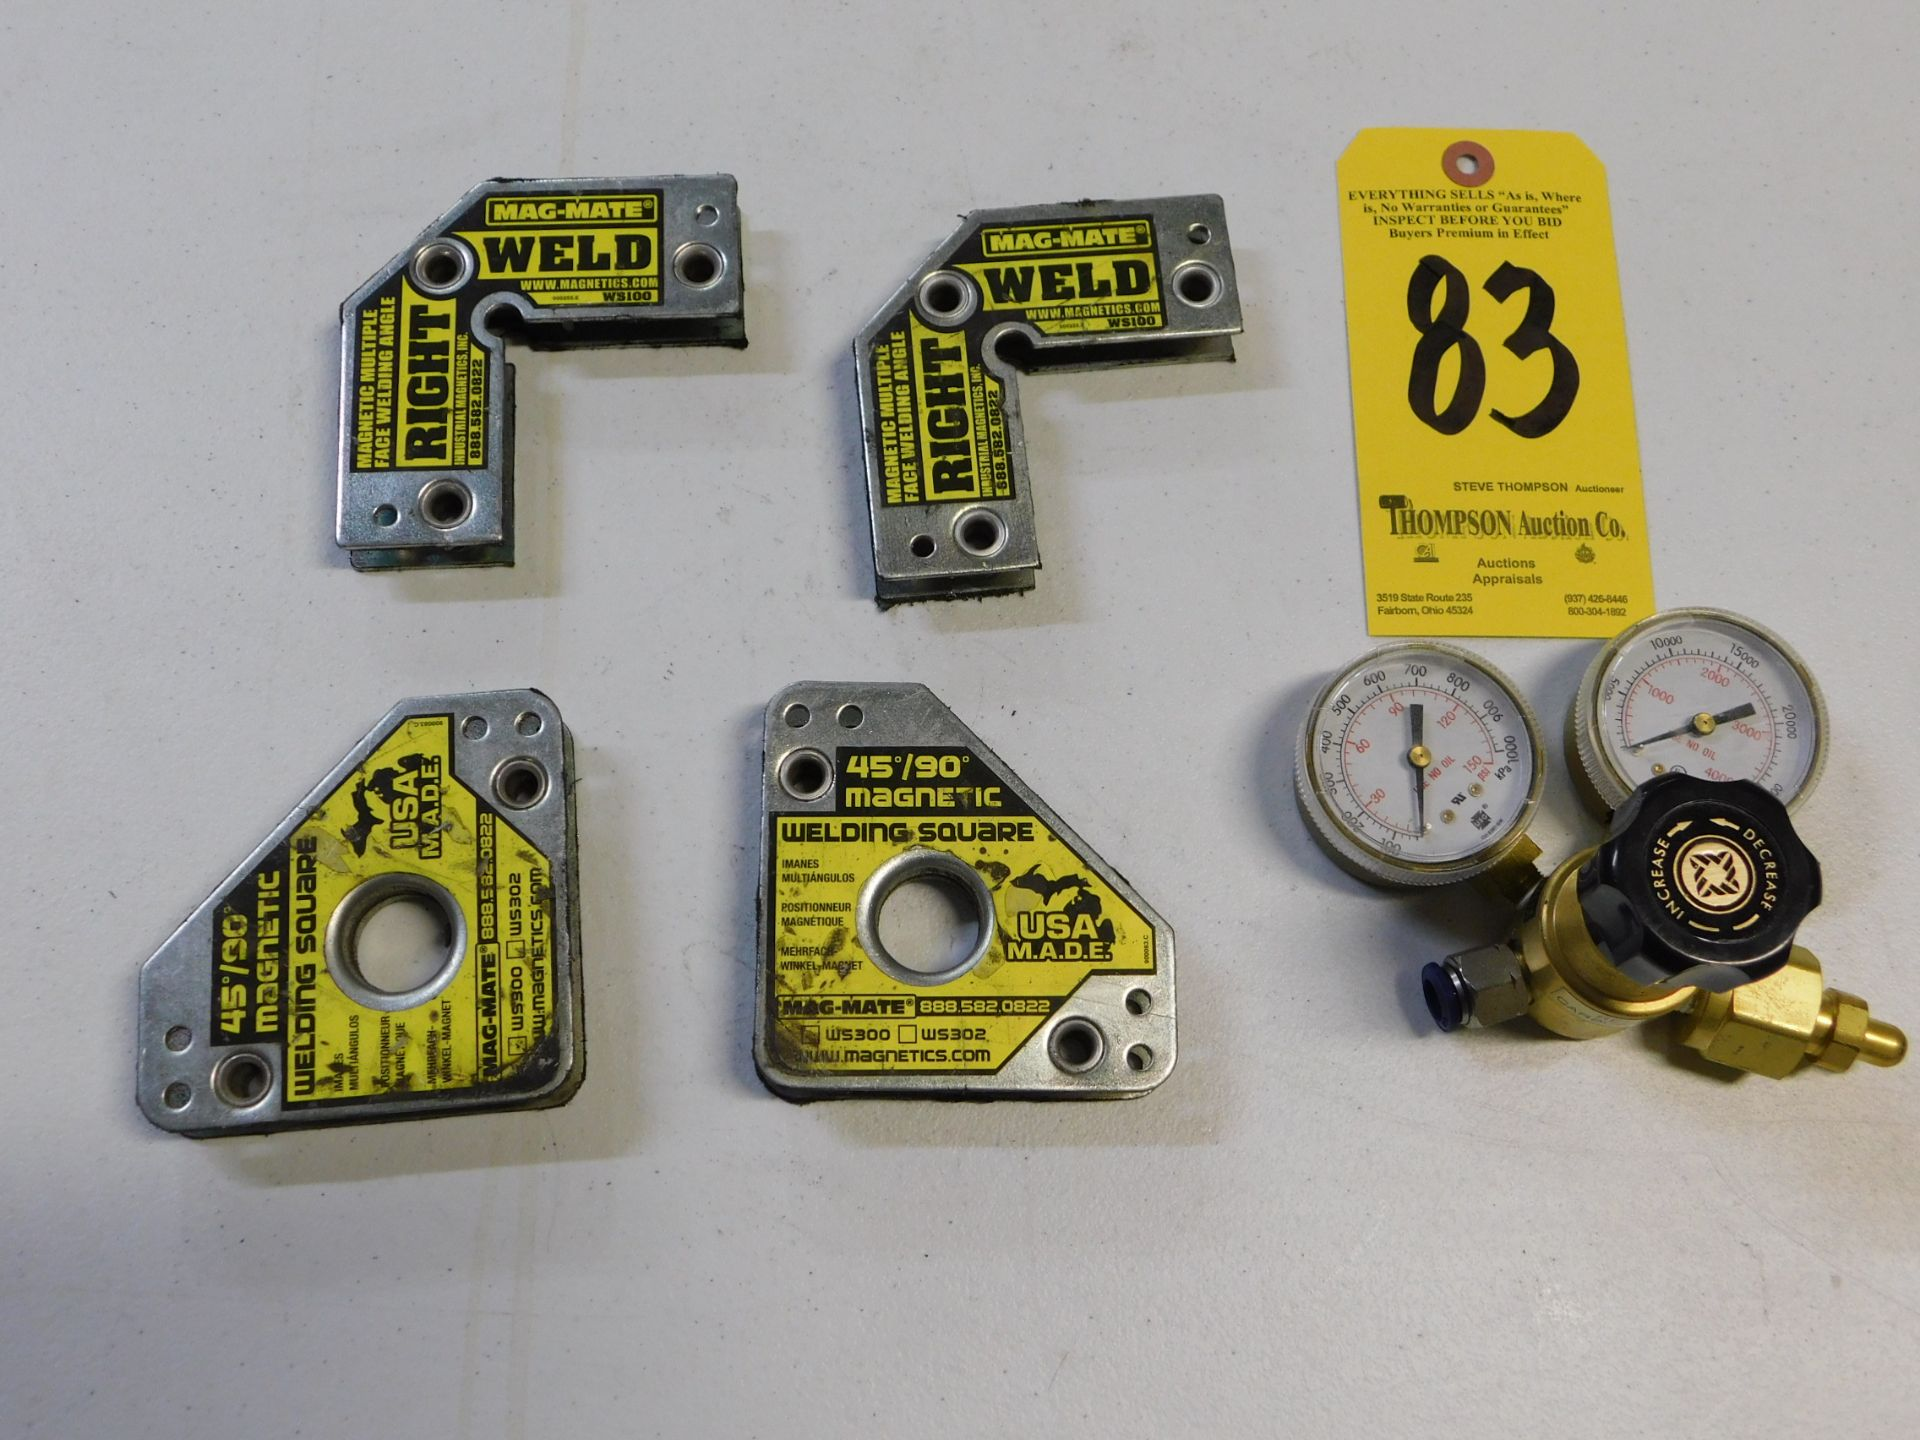 Lot 83 - Welding Square Magnets and Regulator, Lot Location 3204 Olympia Dr. A, Lafayette, IN 47909